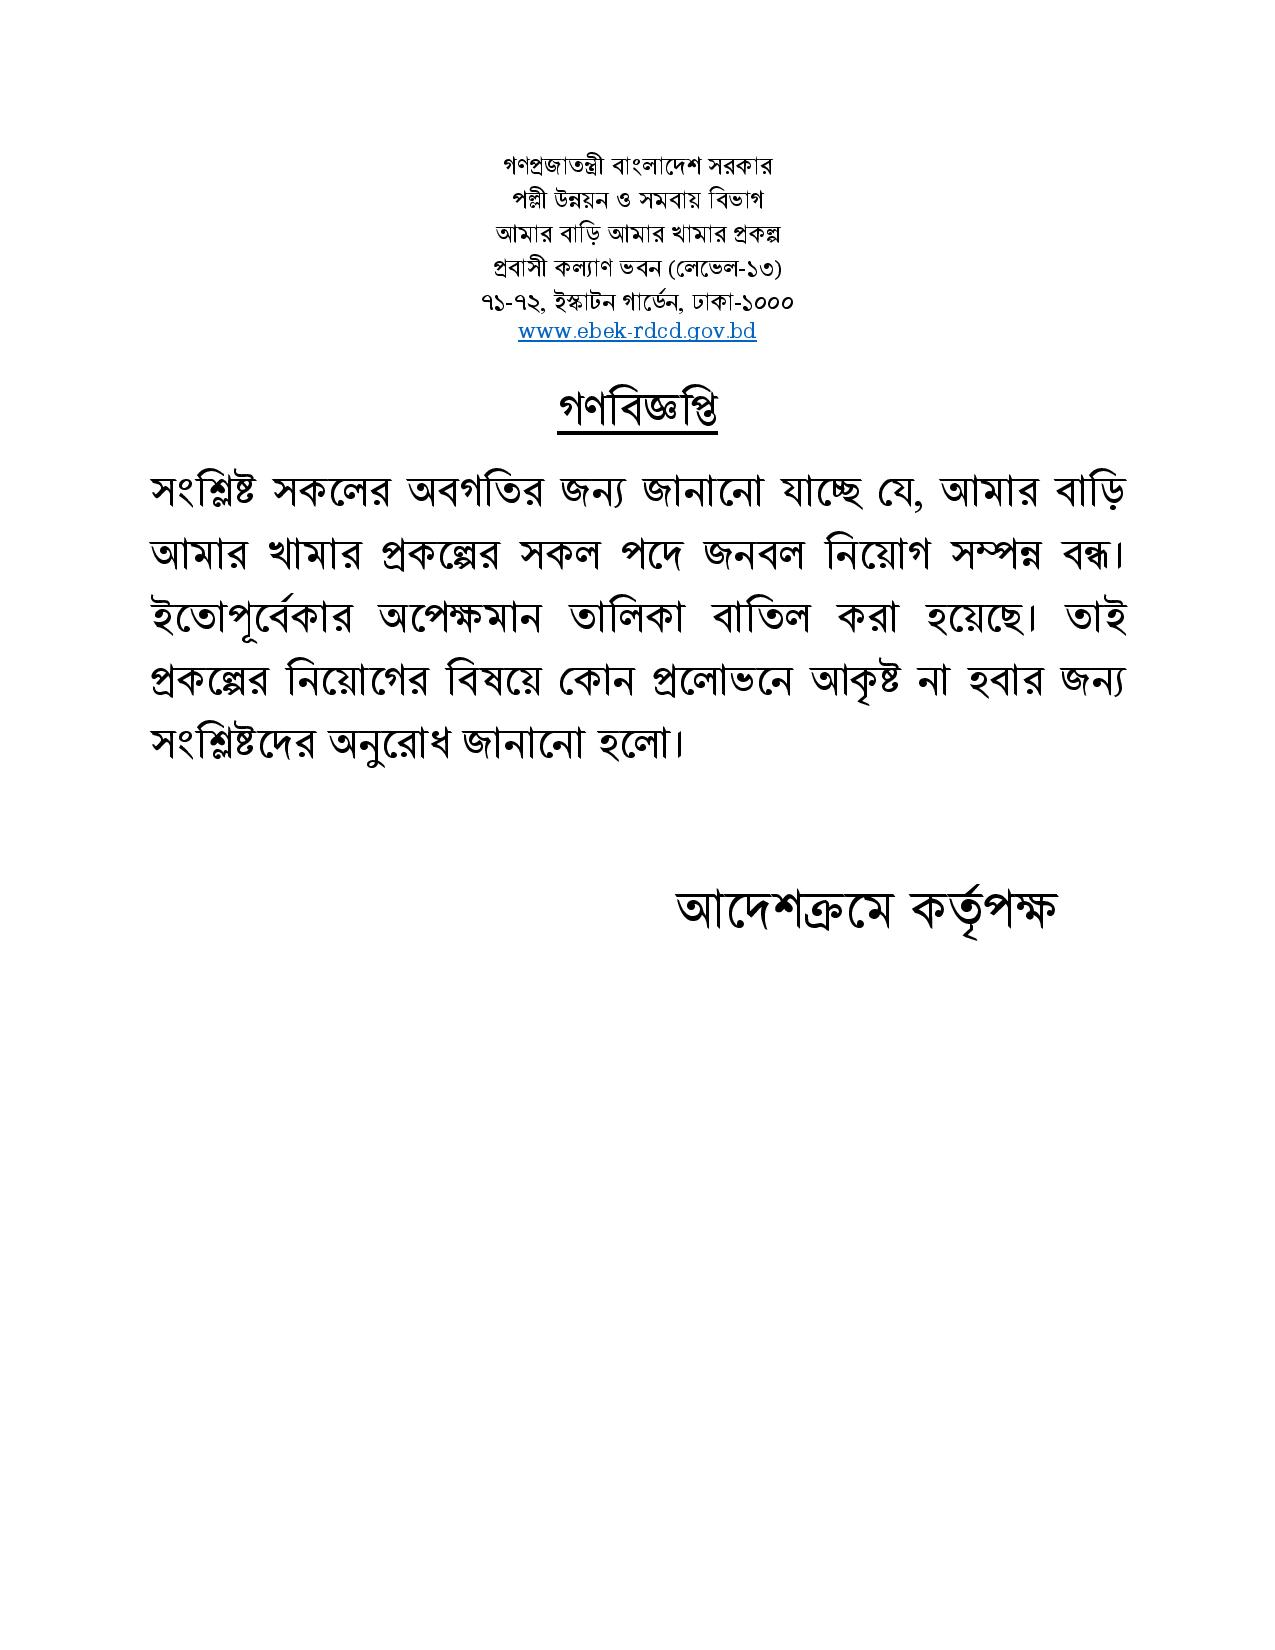 EBEK Job Circular related Important Notice 2020, EBEK Job circular cancelled Notice 2020,www.ebek-rdcd.gov., EBEK Job notice 2020, EBEK making conscious people about Job new job circular 2020 and cancelled all of the job notices and Appointment 2020.